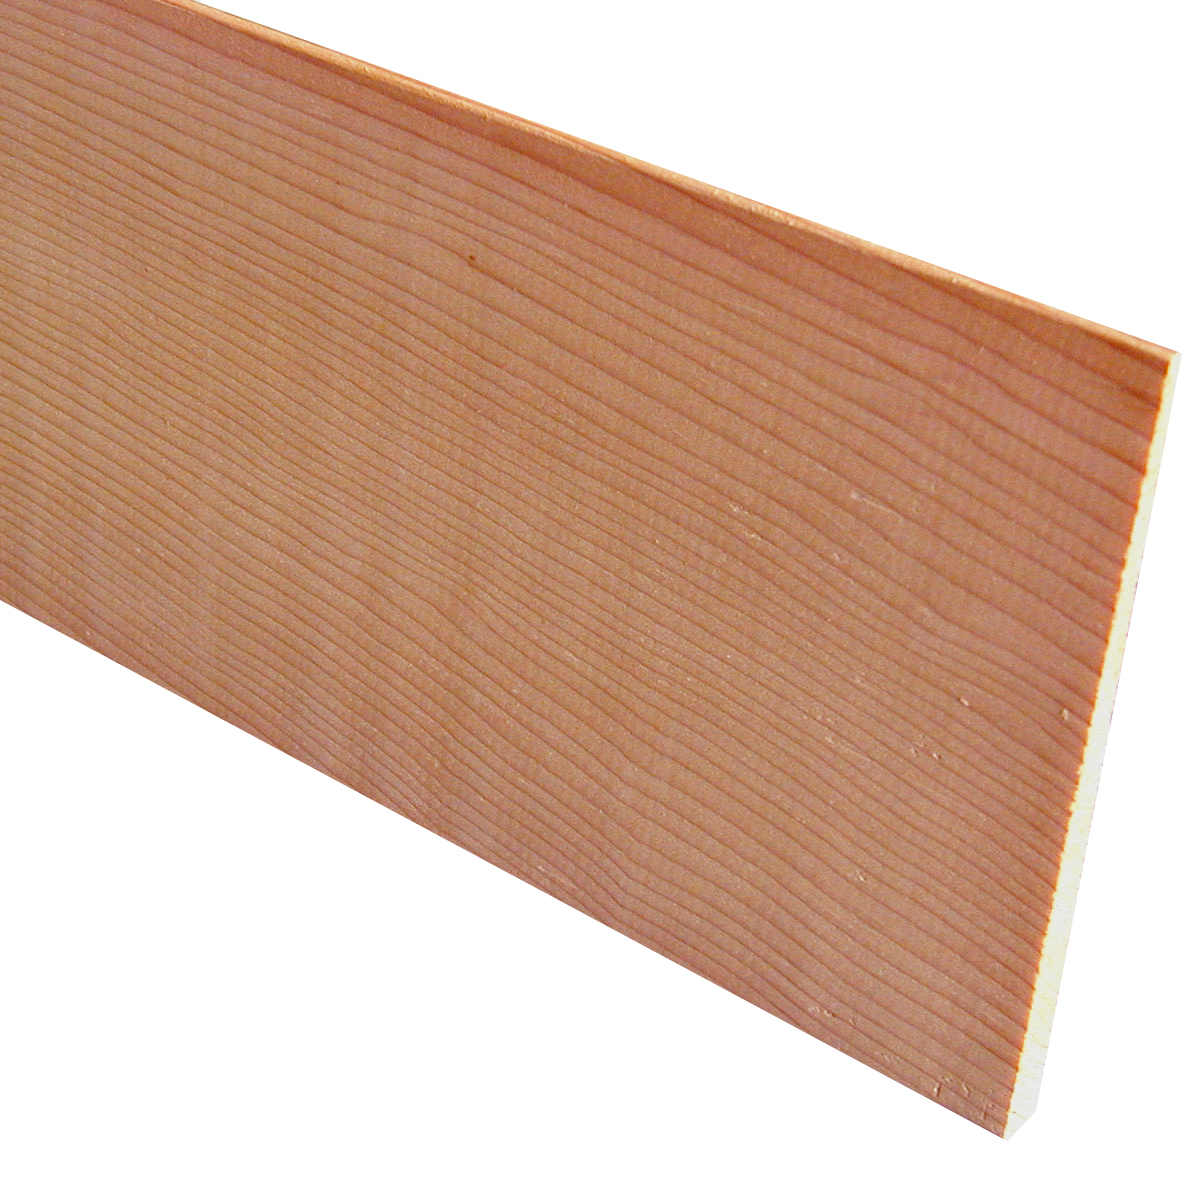 CLAPBOARD CLEAR VG WESTERN RED CEDAR